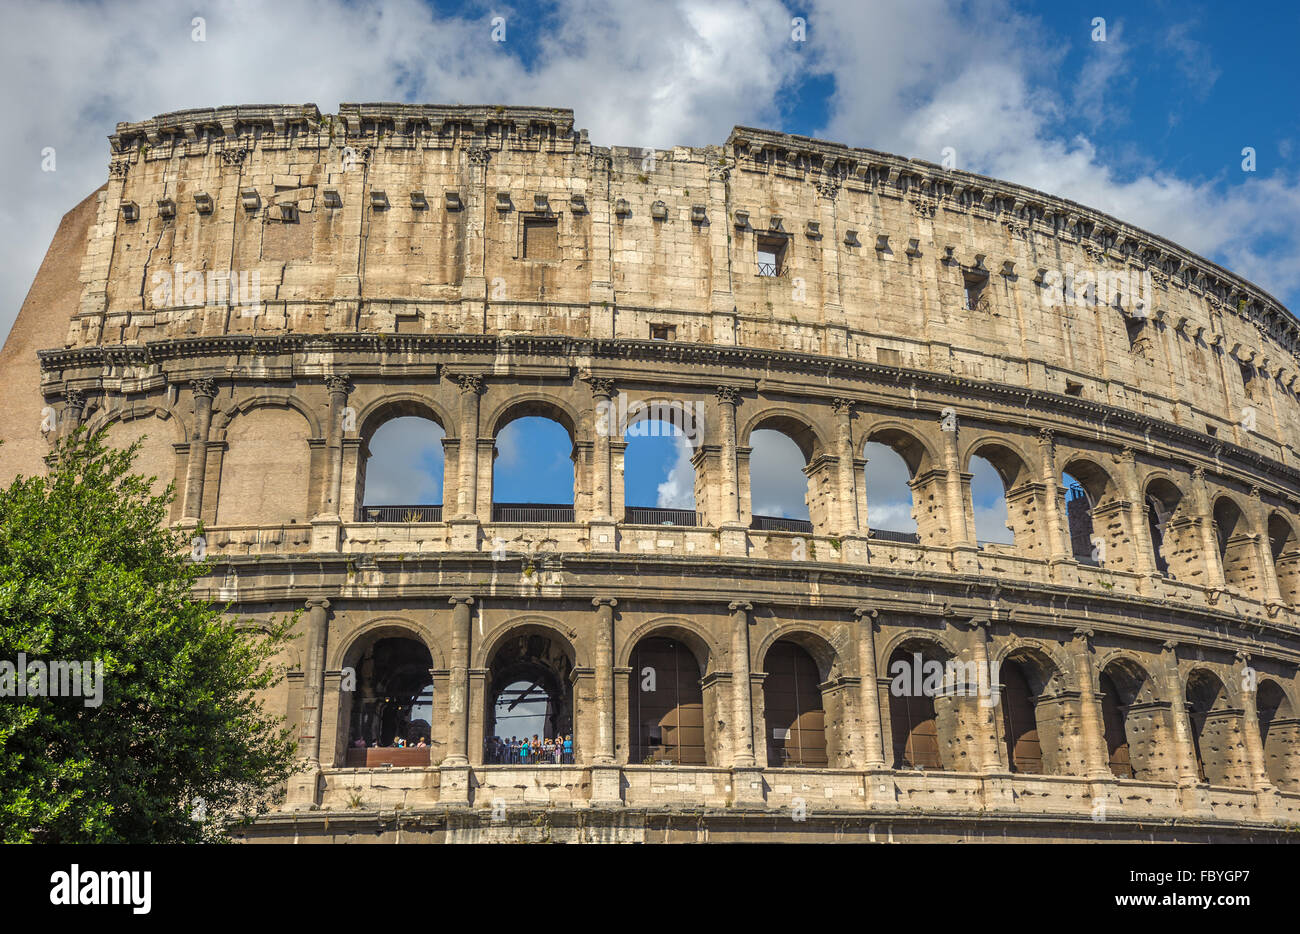 Colosseum (Coliseum), major tourist attraction in Rome, Italy - Stock Image